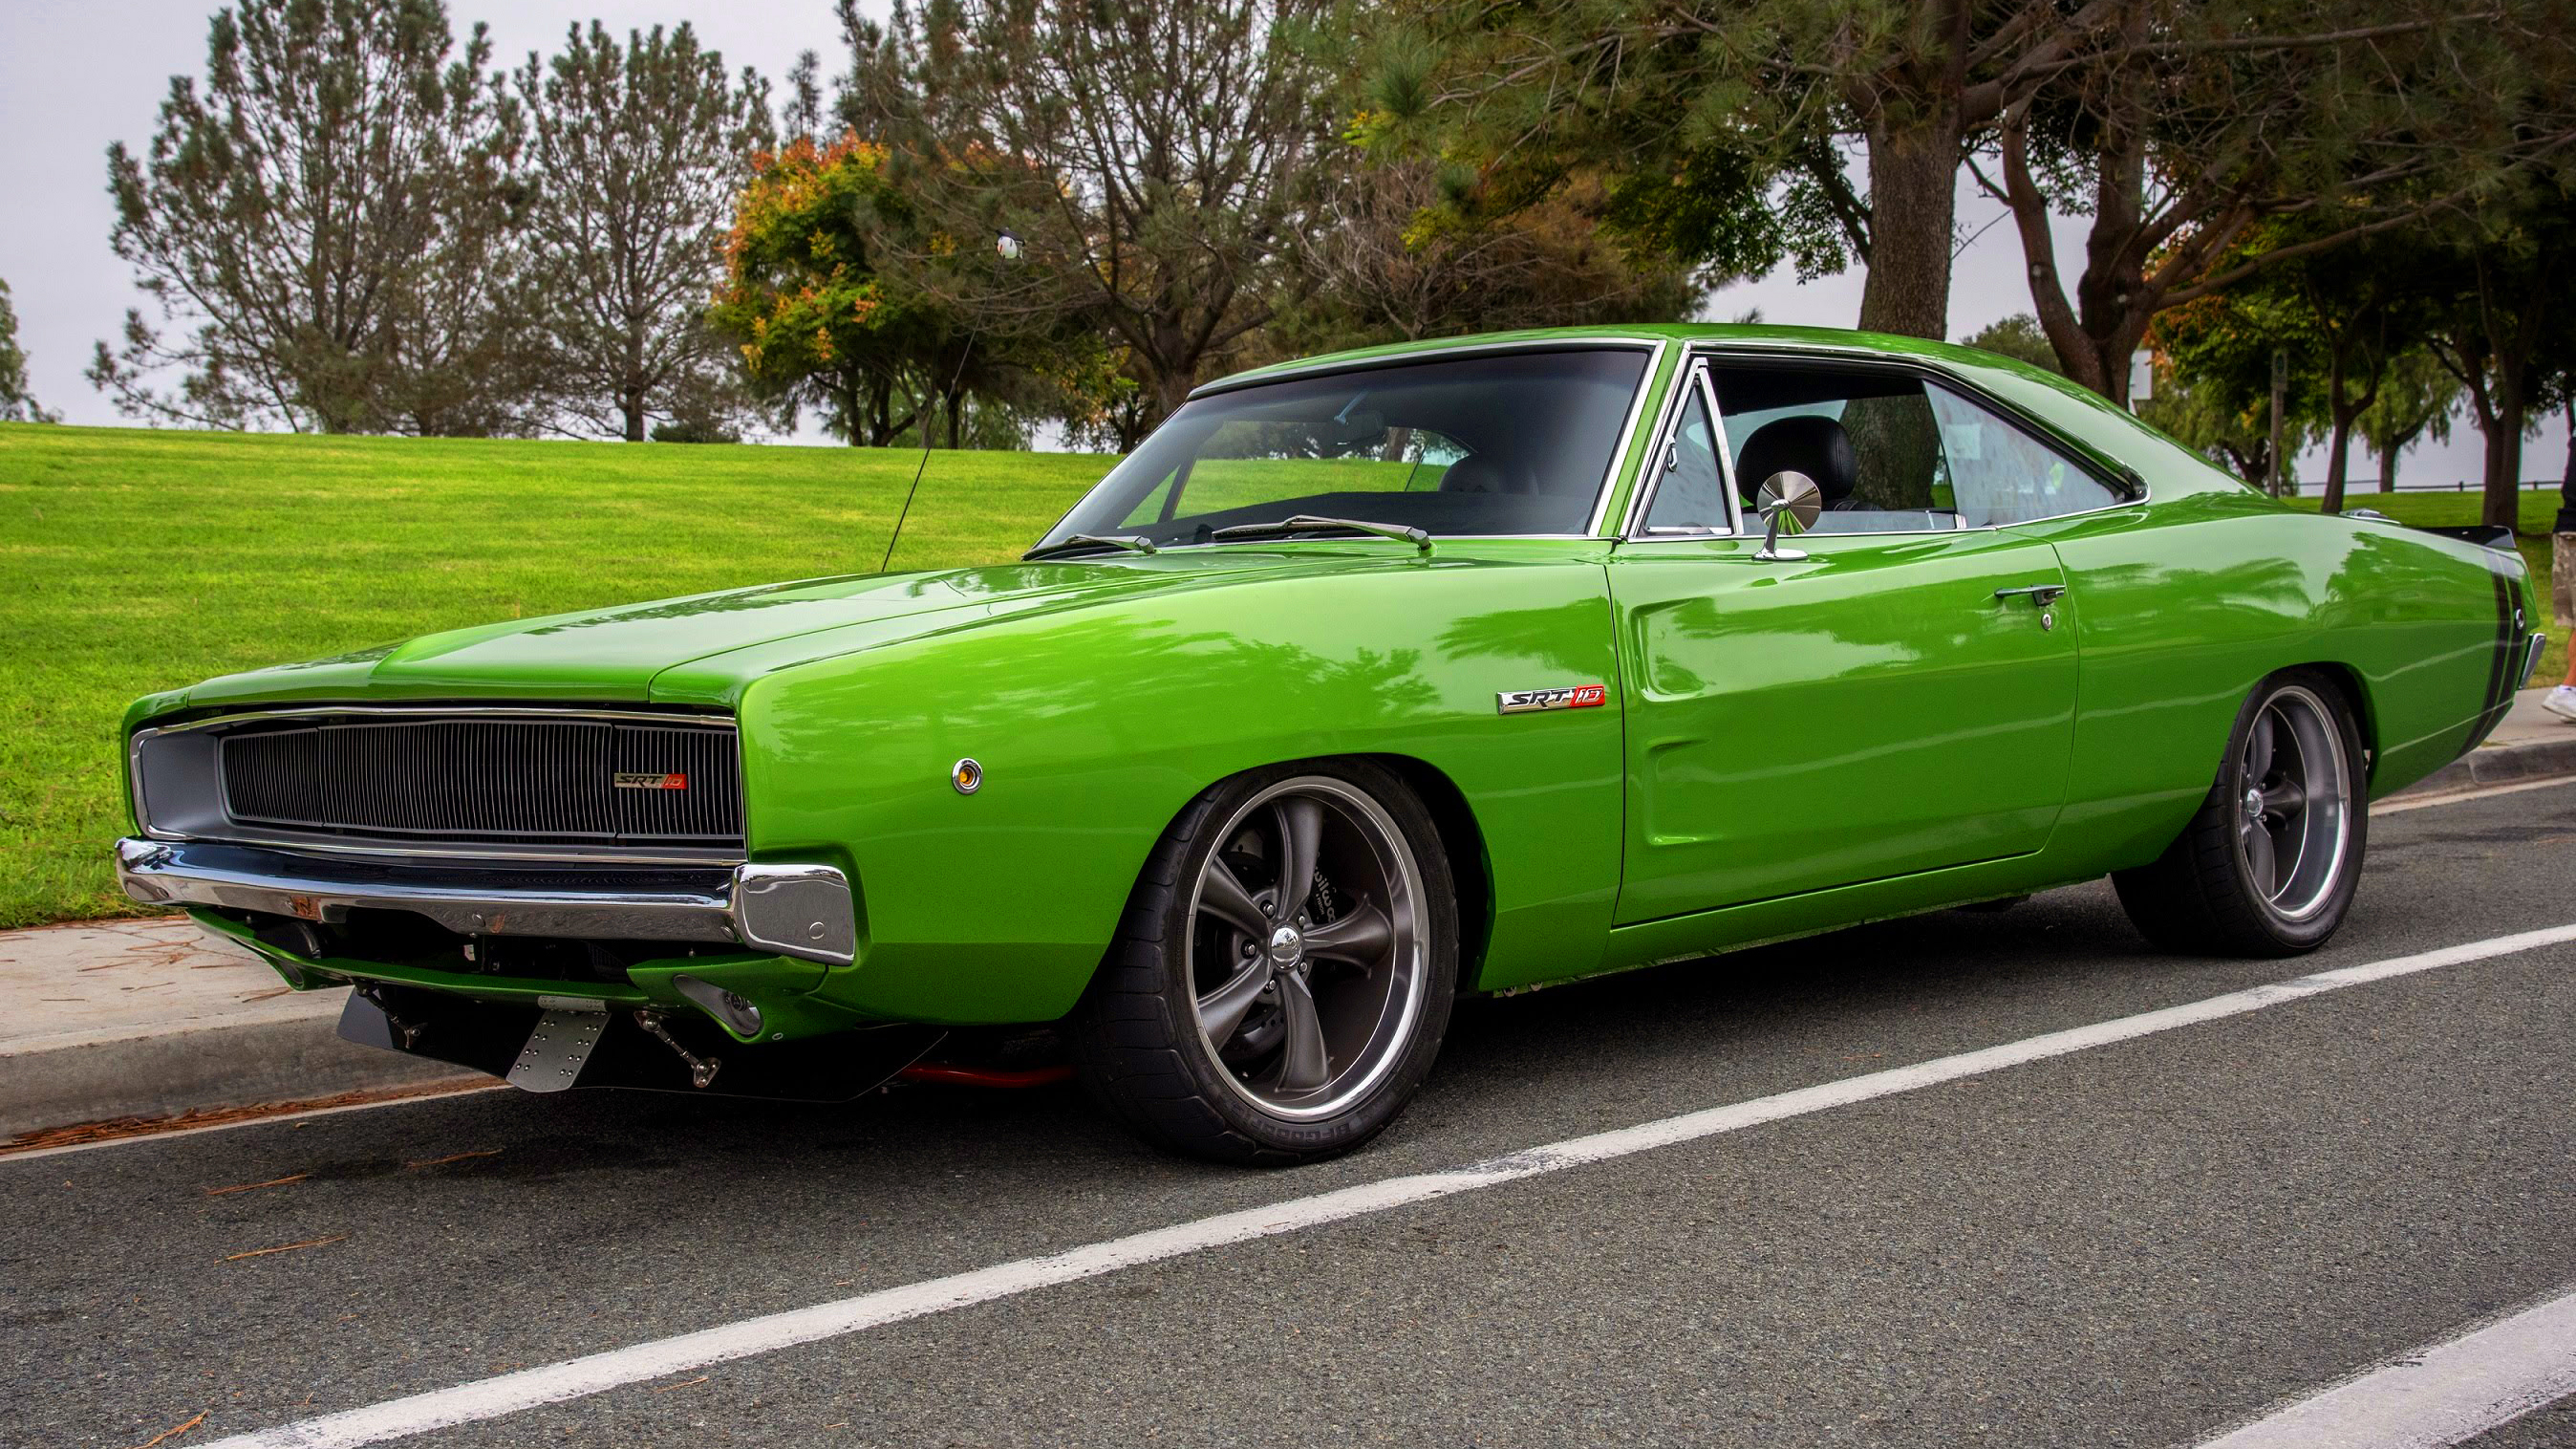 This Viper V10 Powered 1968 Dodge Charger Srt10 Is Simply